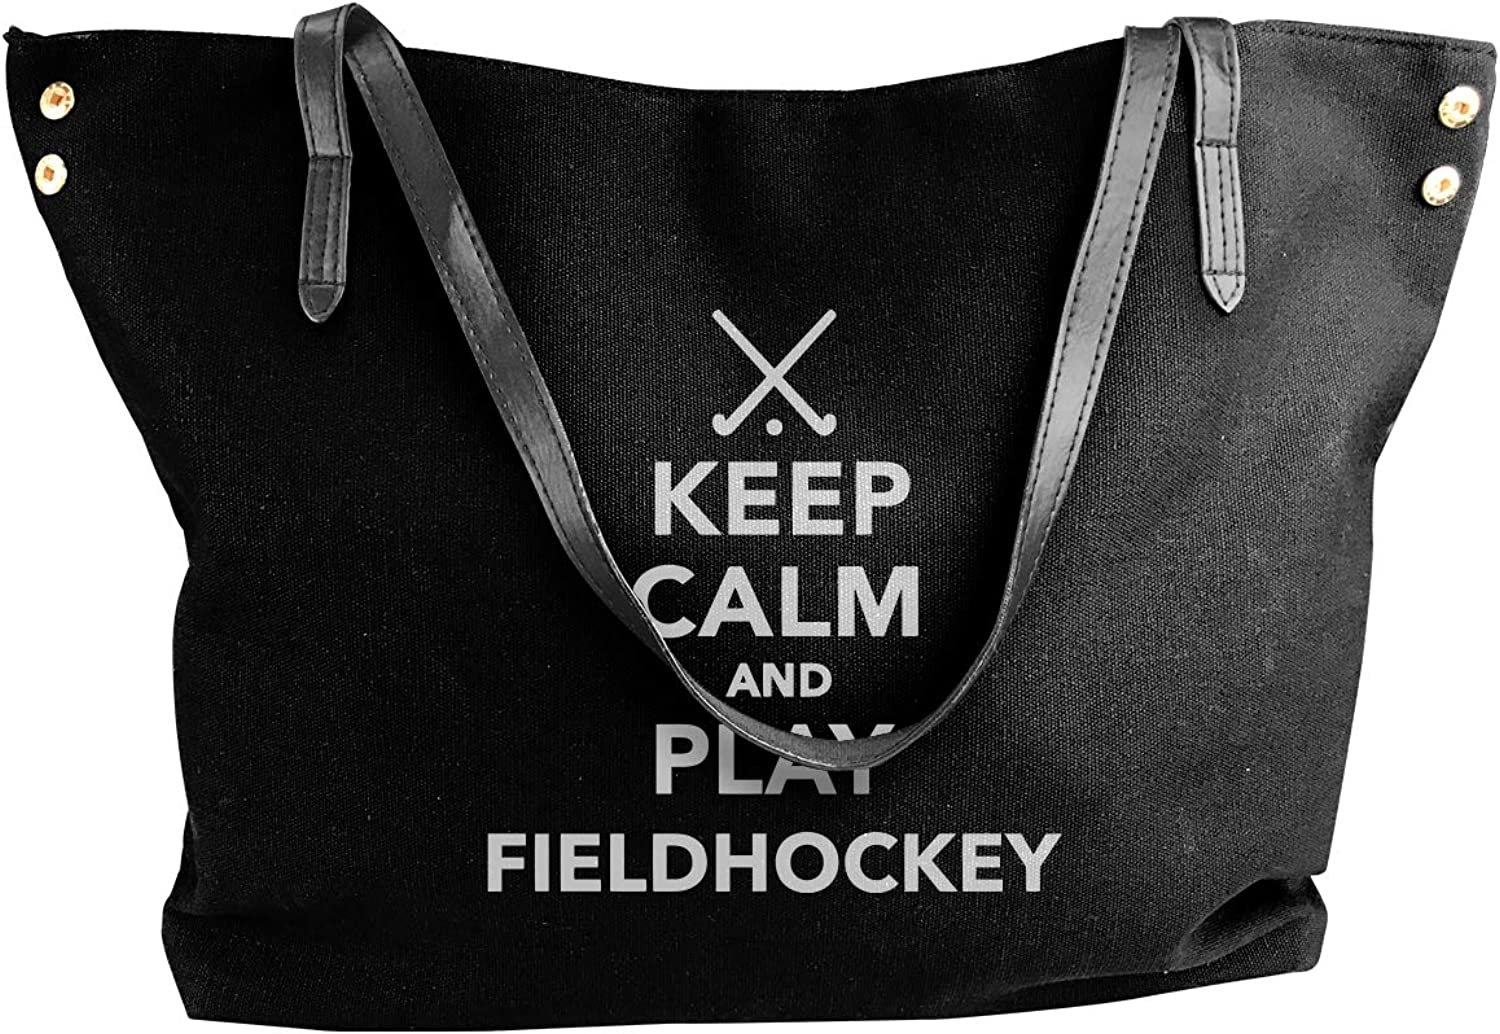 Keep Calm And Play Field Hockey Women'S Casual Canvas Shoulder Bag For Travel Big Shopping Bag